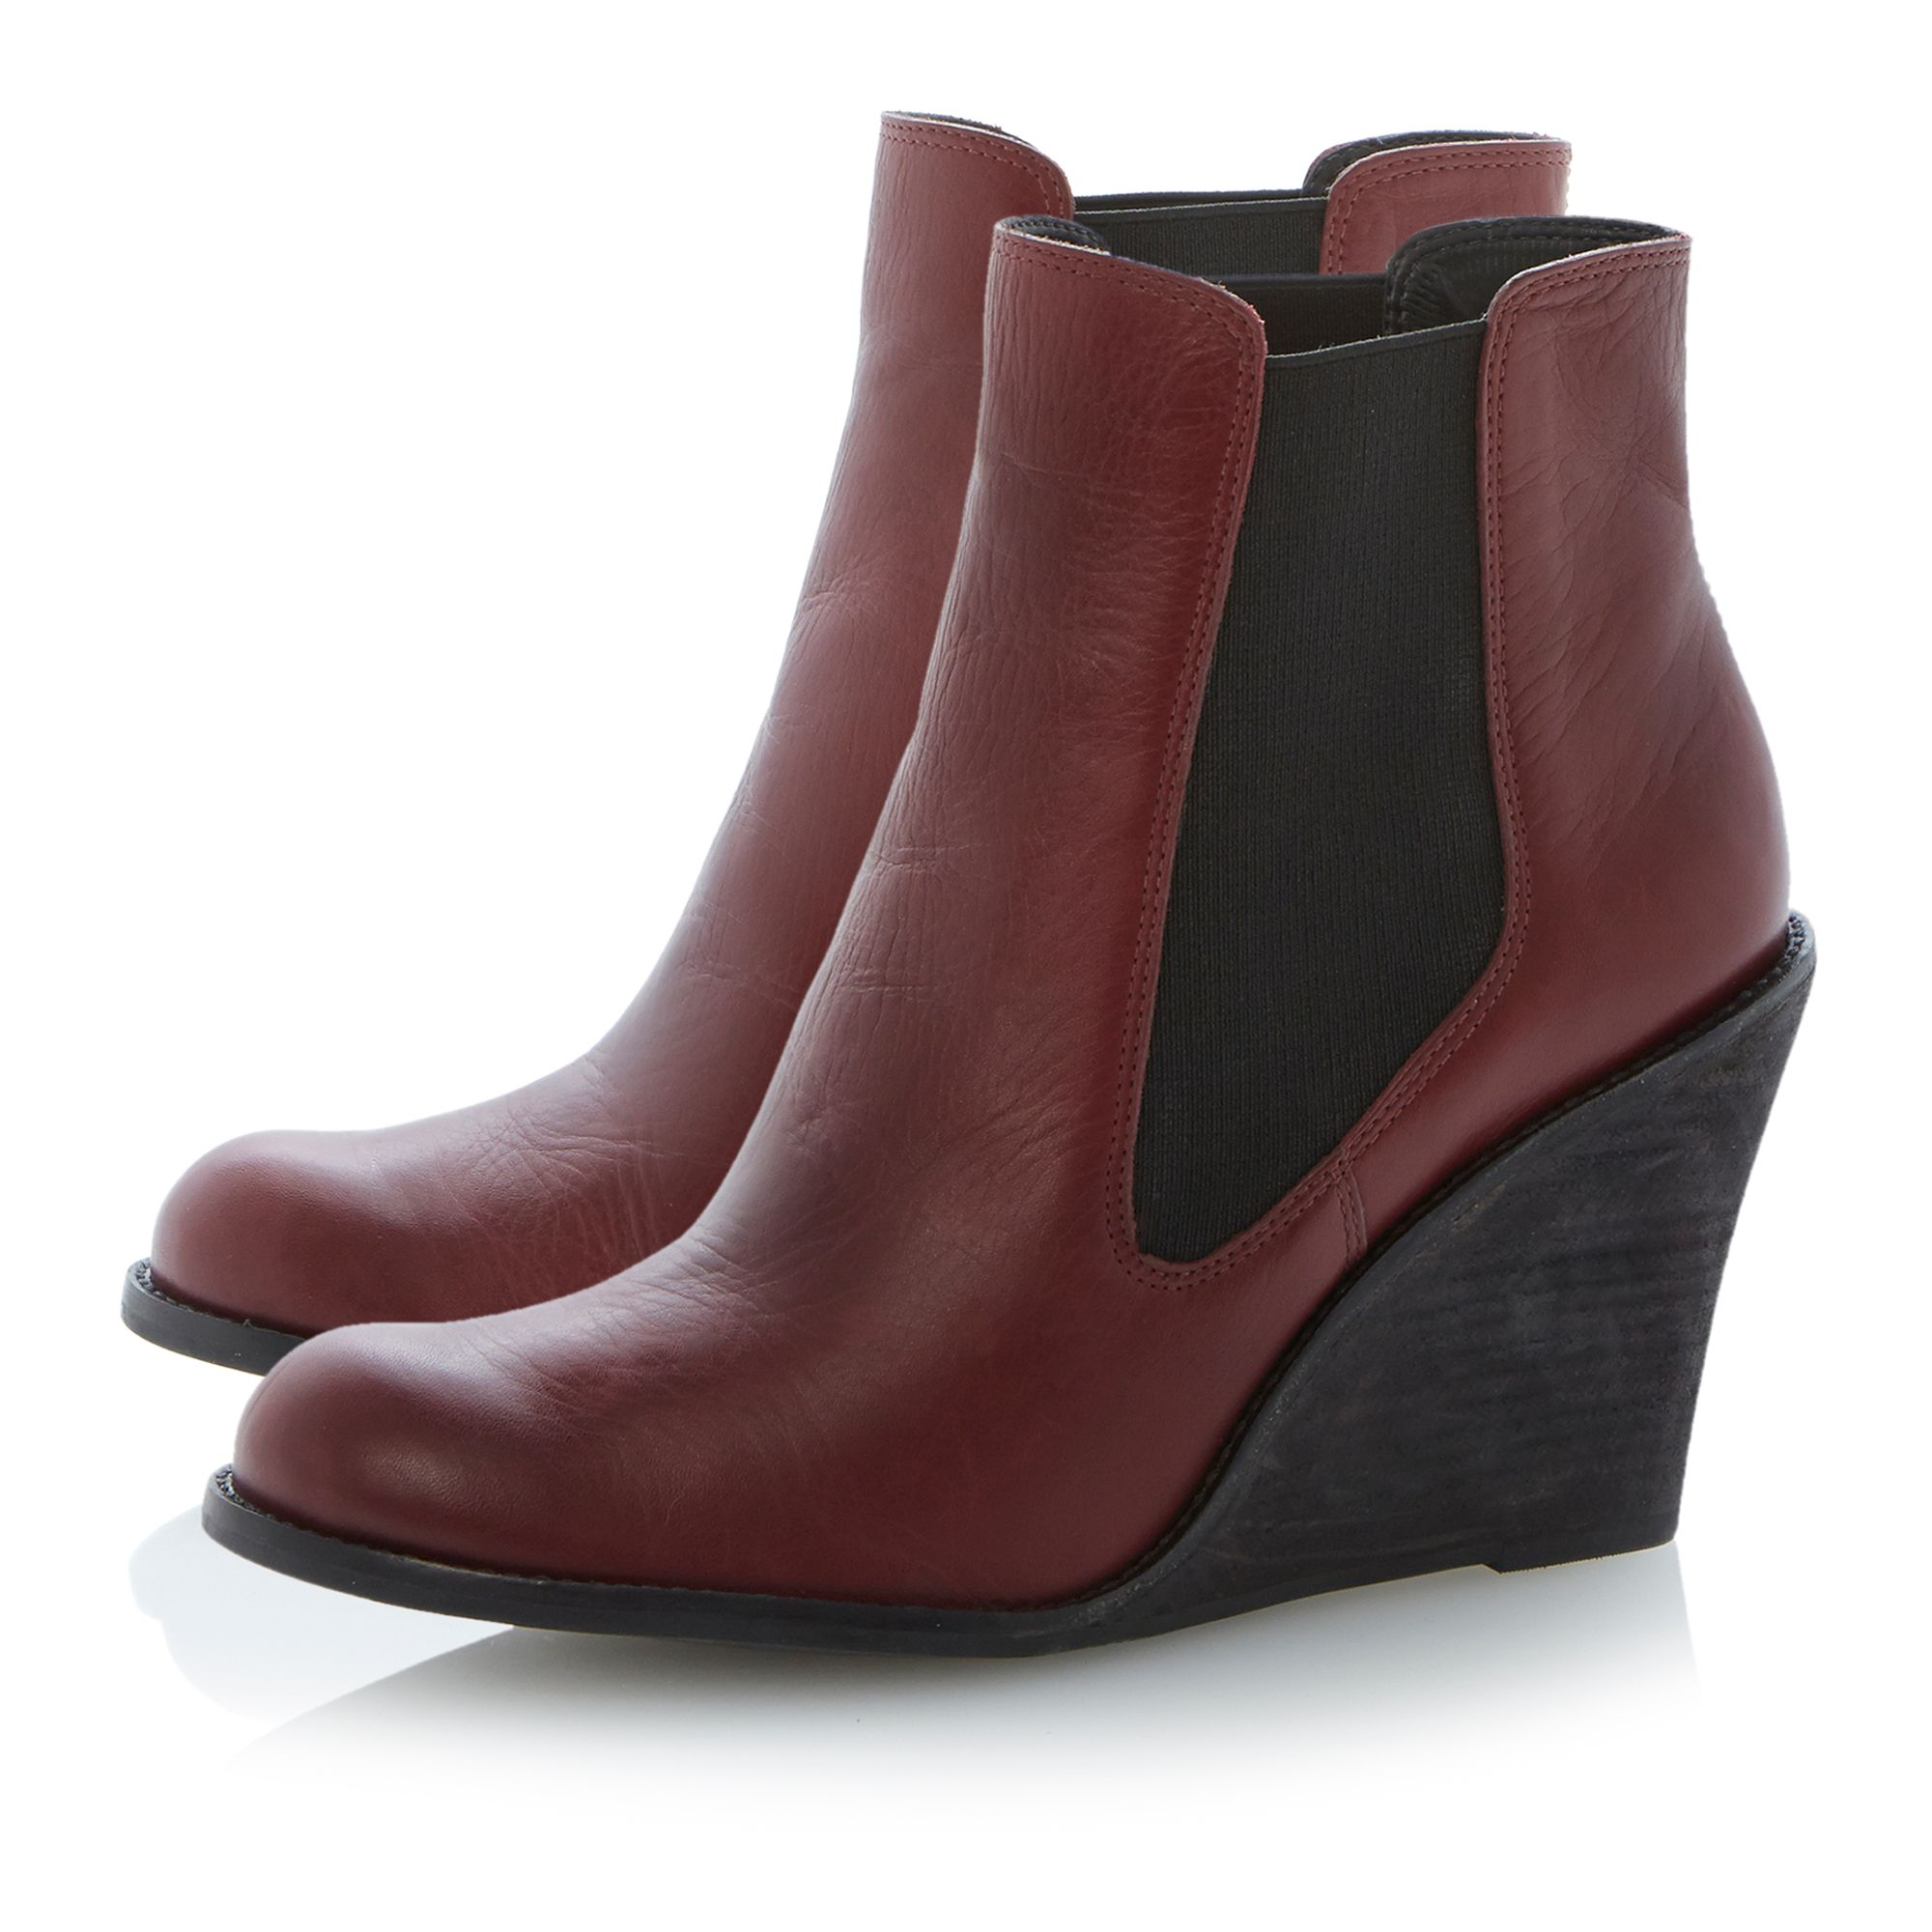 Peoney elastic gusset wedge boots